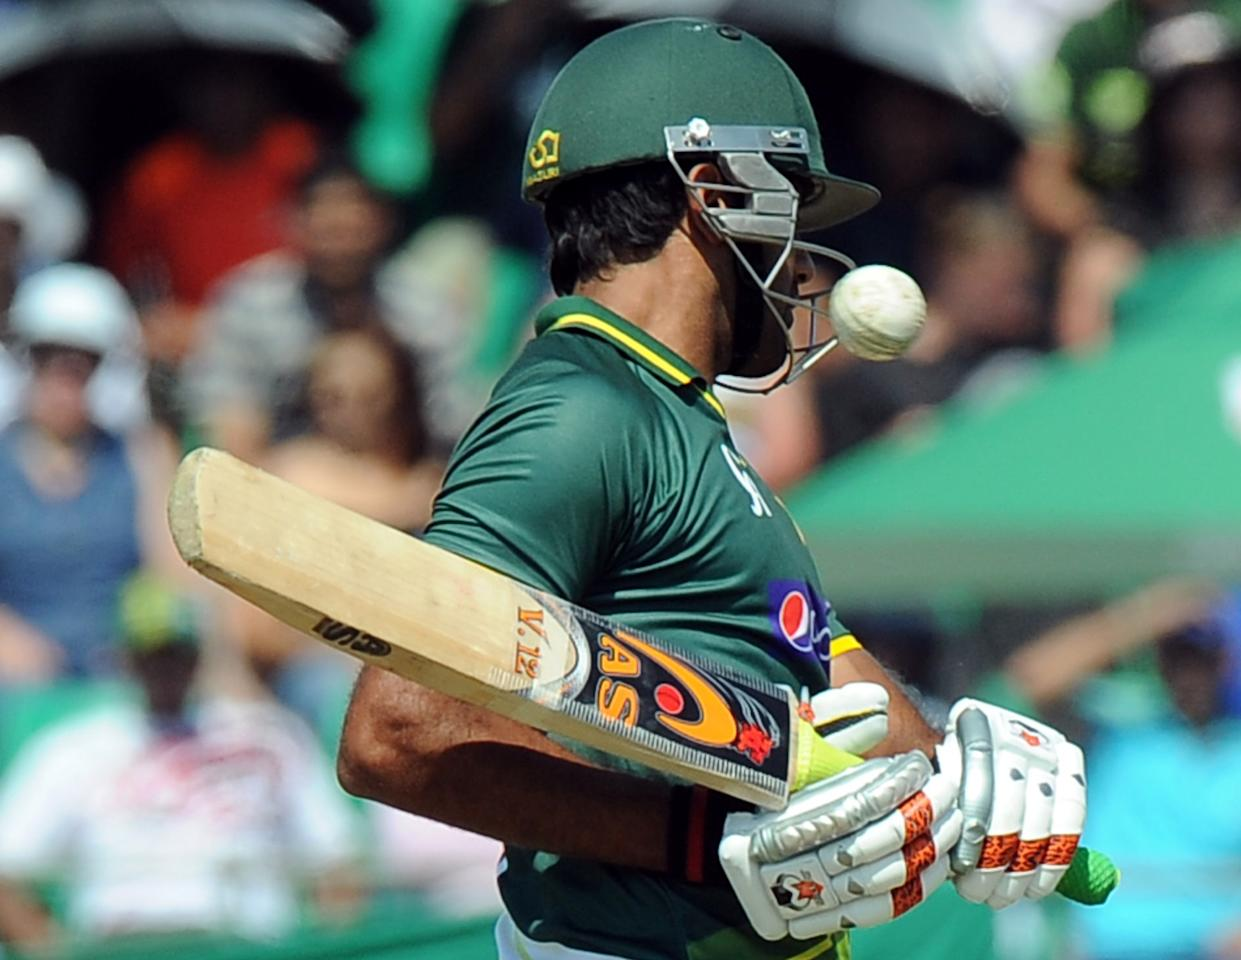 Pakistan's batsman Wahab Riaz avoids a ball during the fifth and final One-Day Internationals (ODI) cricket match between South Africa and Pakistan in Benoni at Willowmoore Park on March 24, 2013. Pakistan finished the innings on 205 all out. AFP PHOTO / ALEXANDER JOE        (Photo credit should read ALEXANDER JOE/AFP/Getty Images)